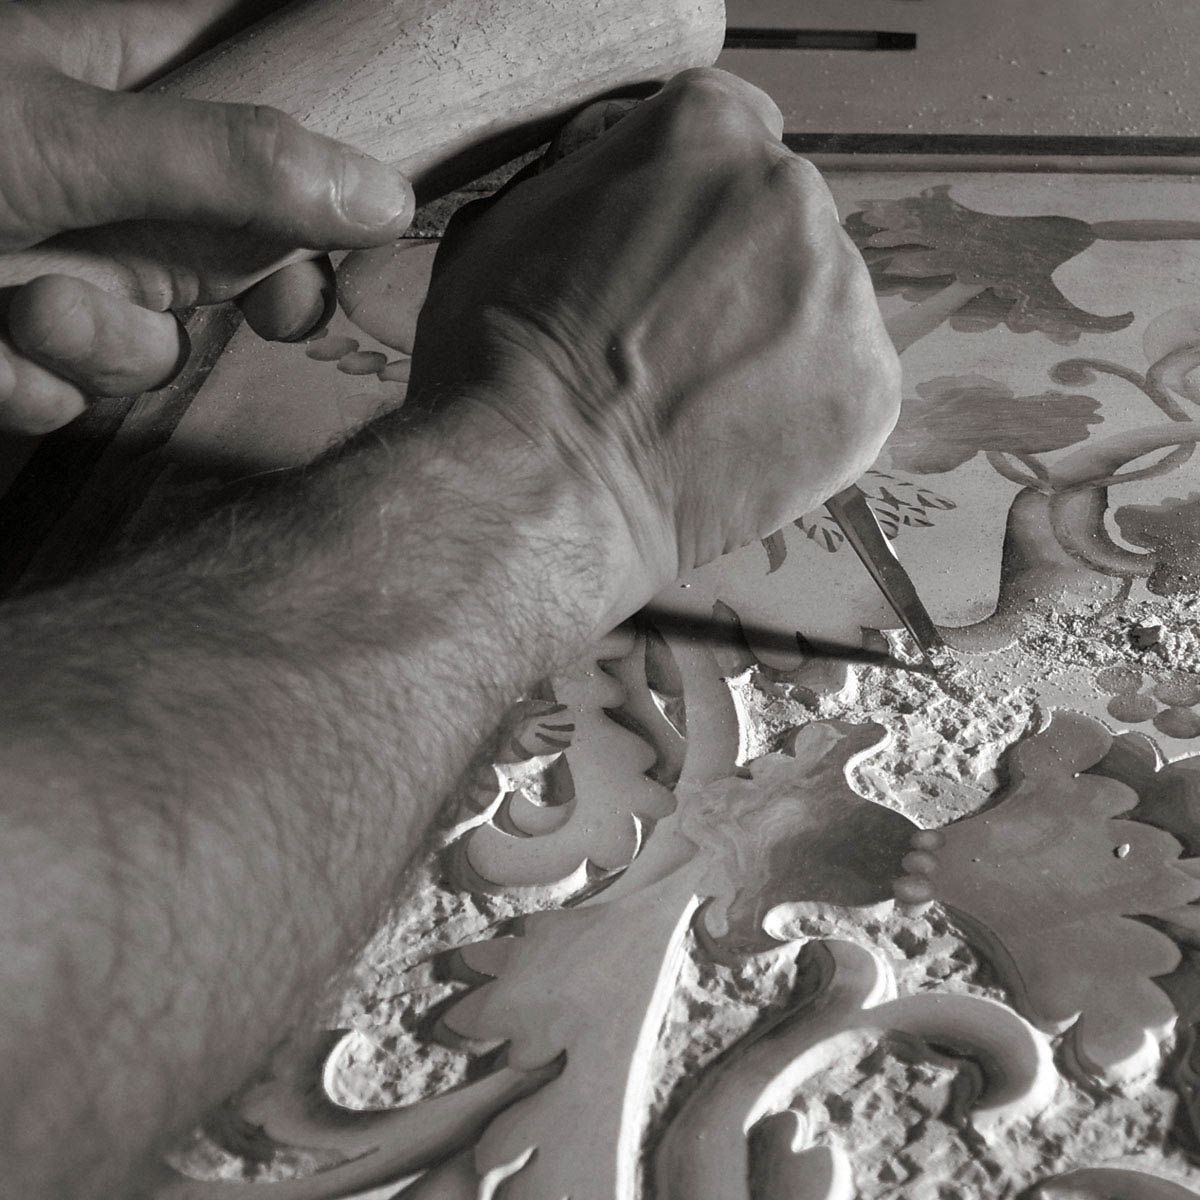 Manufacturing process of Scagliola